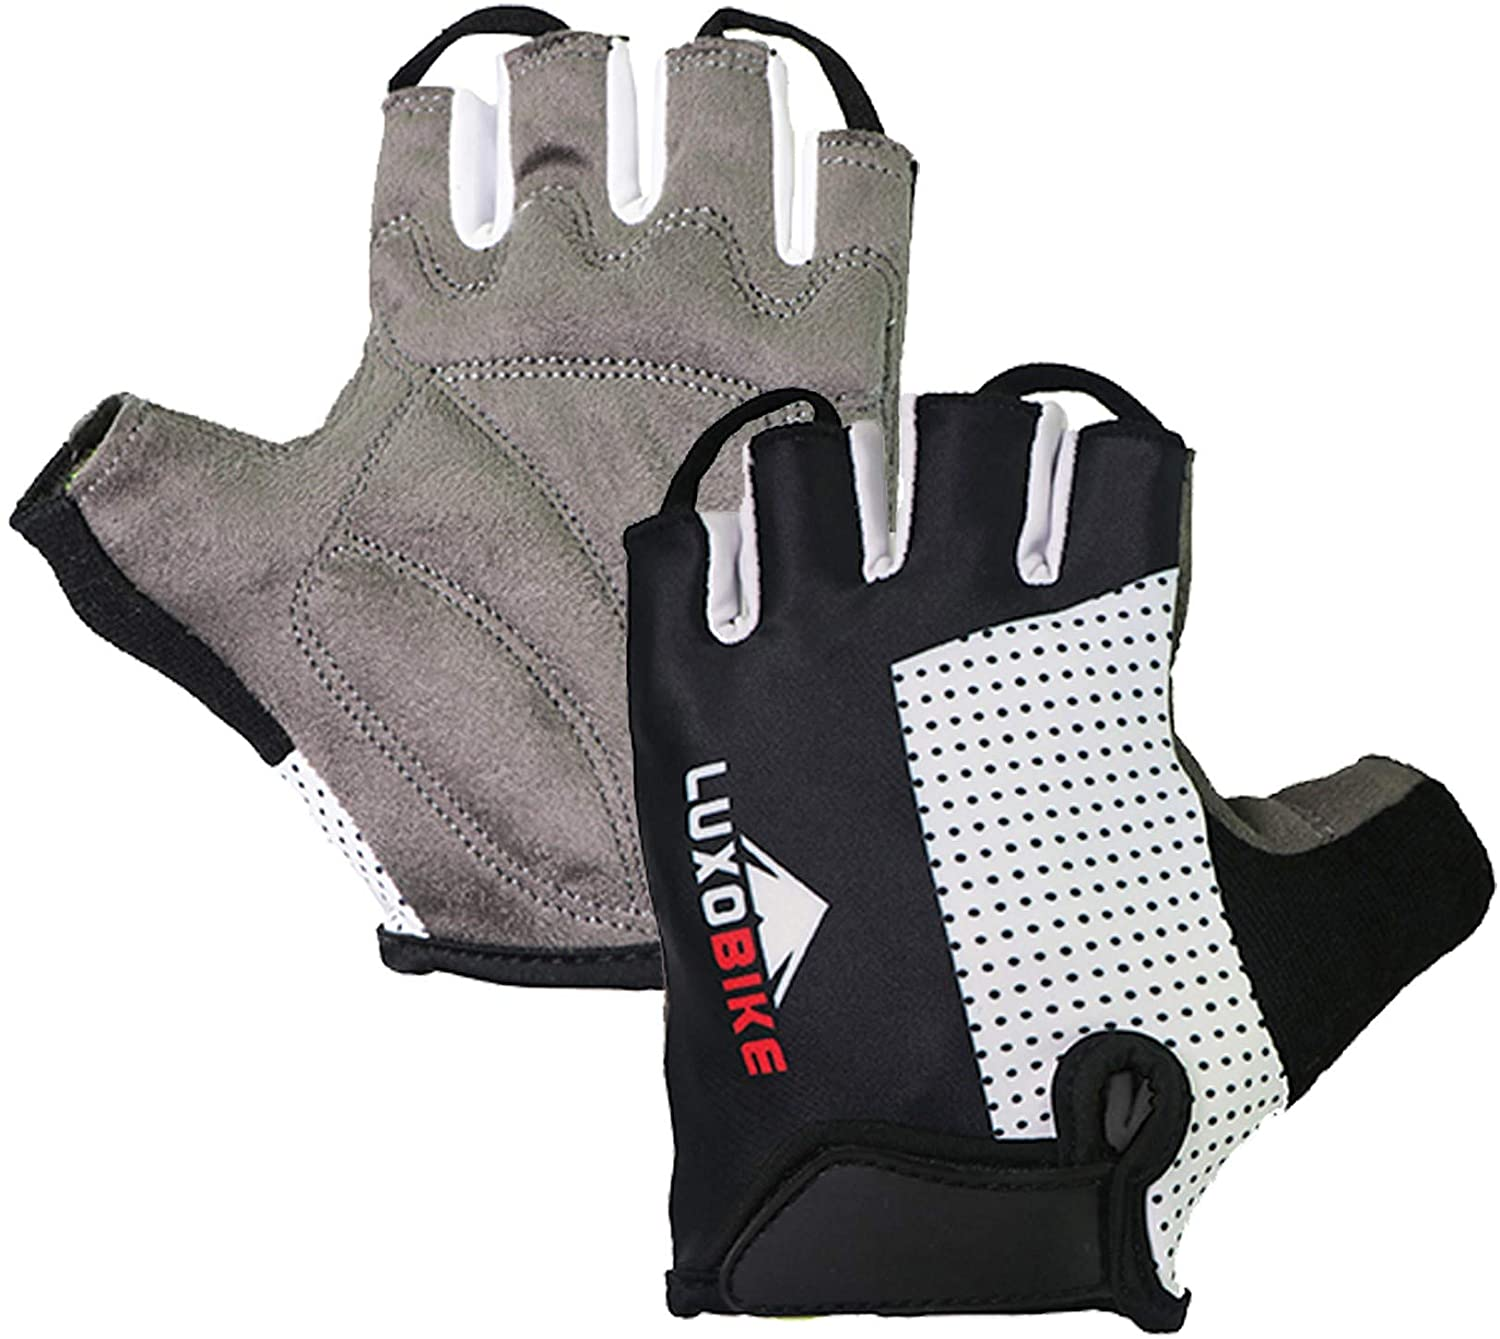 LuxoBike Cycling Gloves Bicycle Gloves Bicycling Gloves Mountain Bike Gloves – Anti Slip Shock Absorbing Padded Breathable Half Finger Short Sports Gloves Accessories for Men/Women